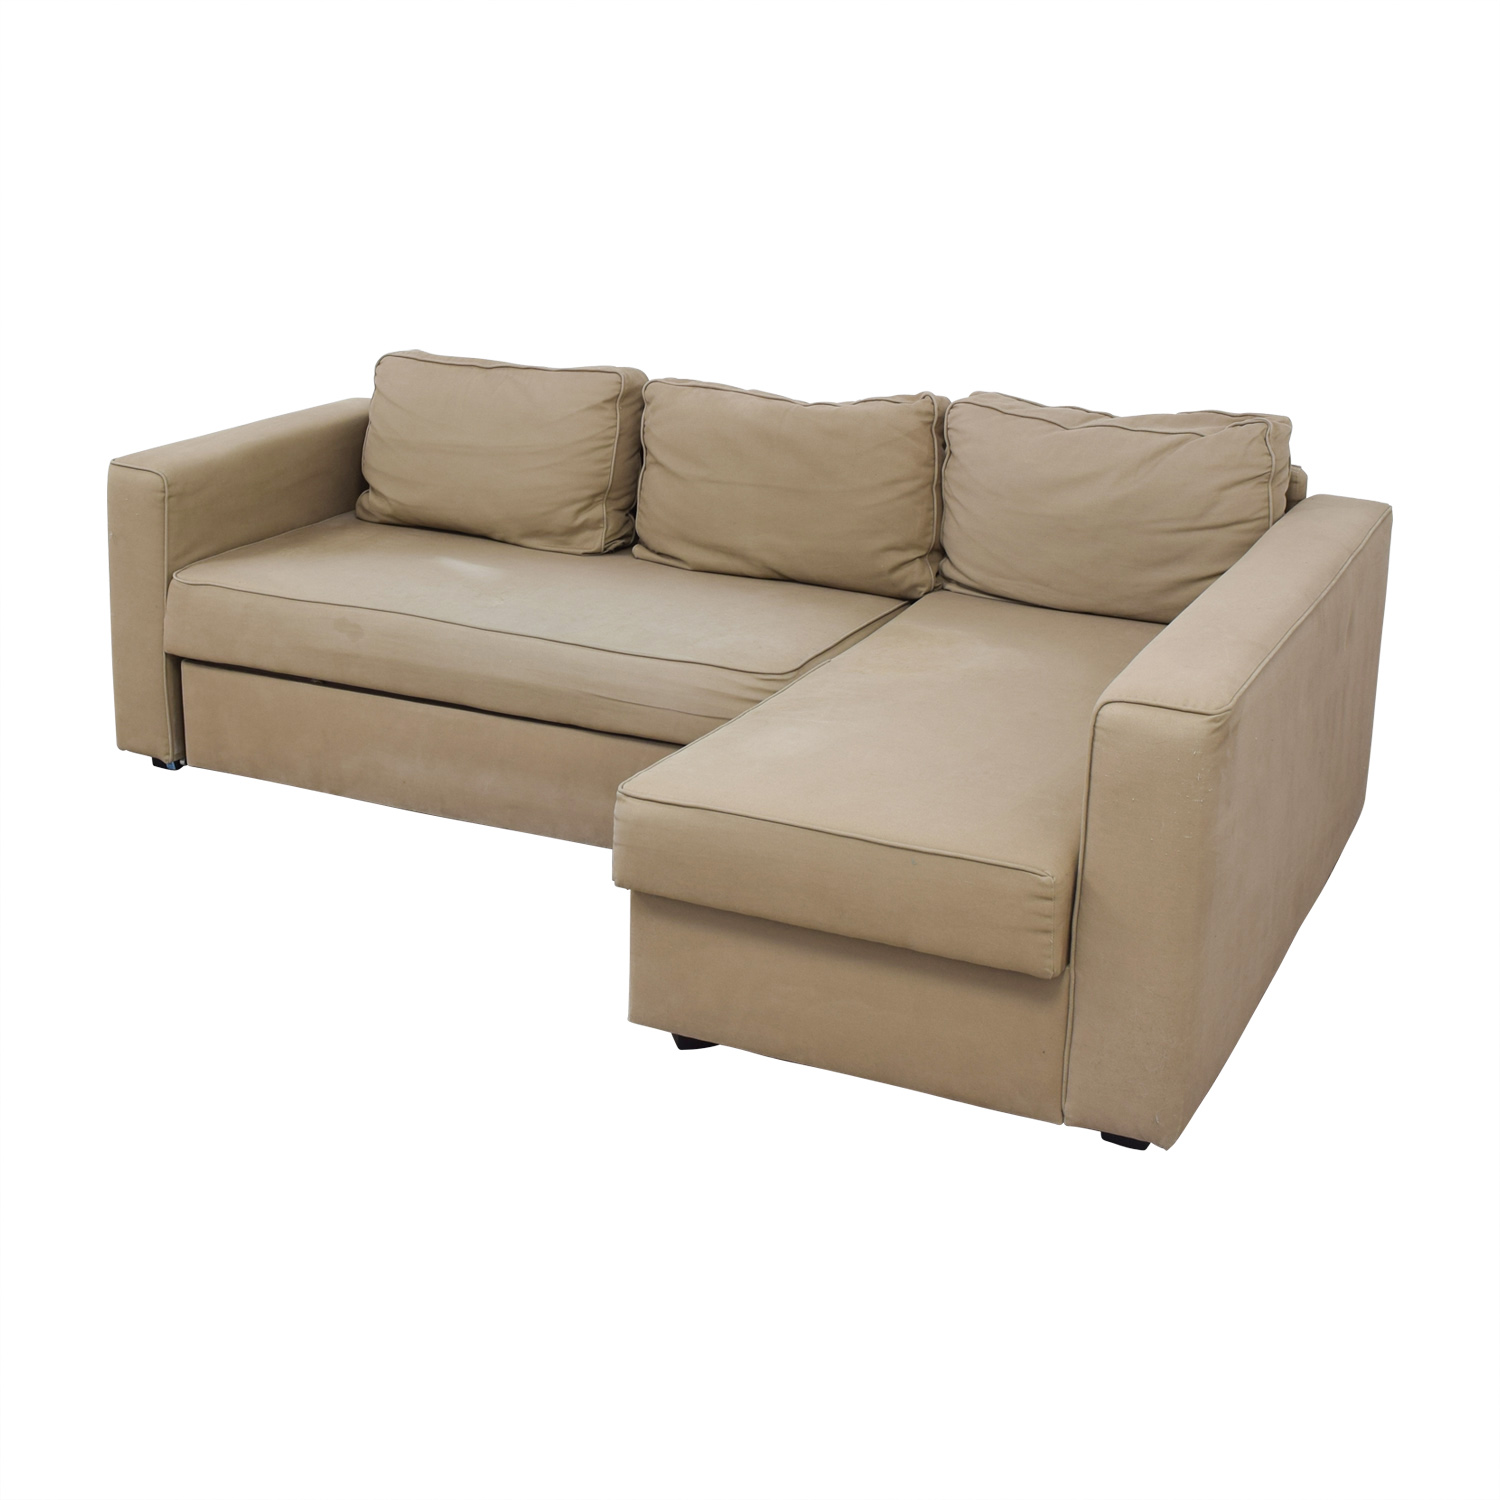 62 ikea ikea manstad sectional sofa bed with on Ikea Sofa Bed With Storage id=21465